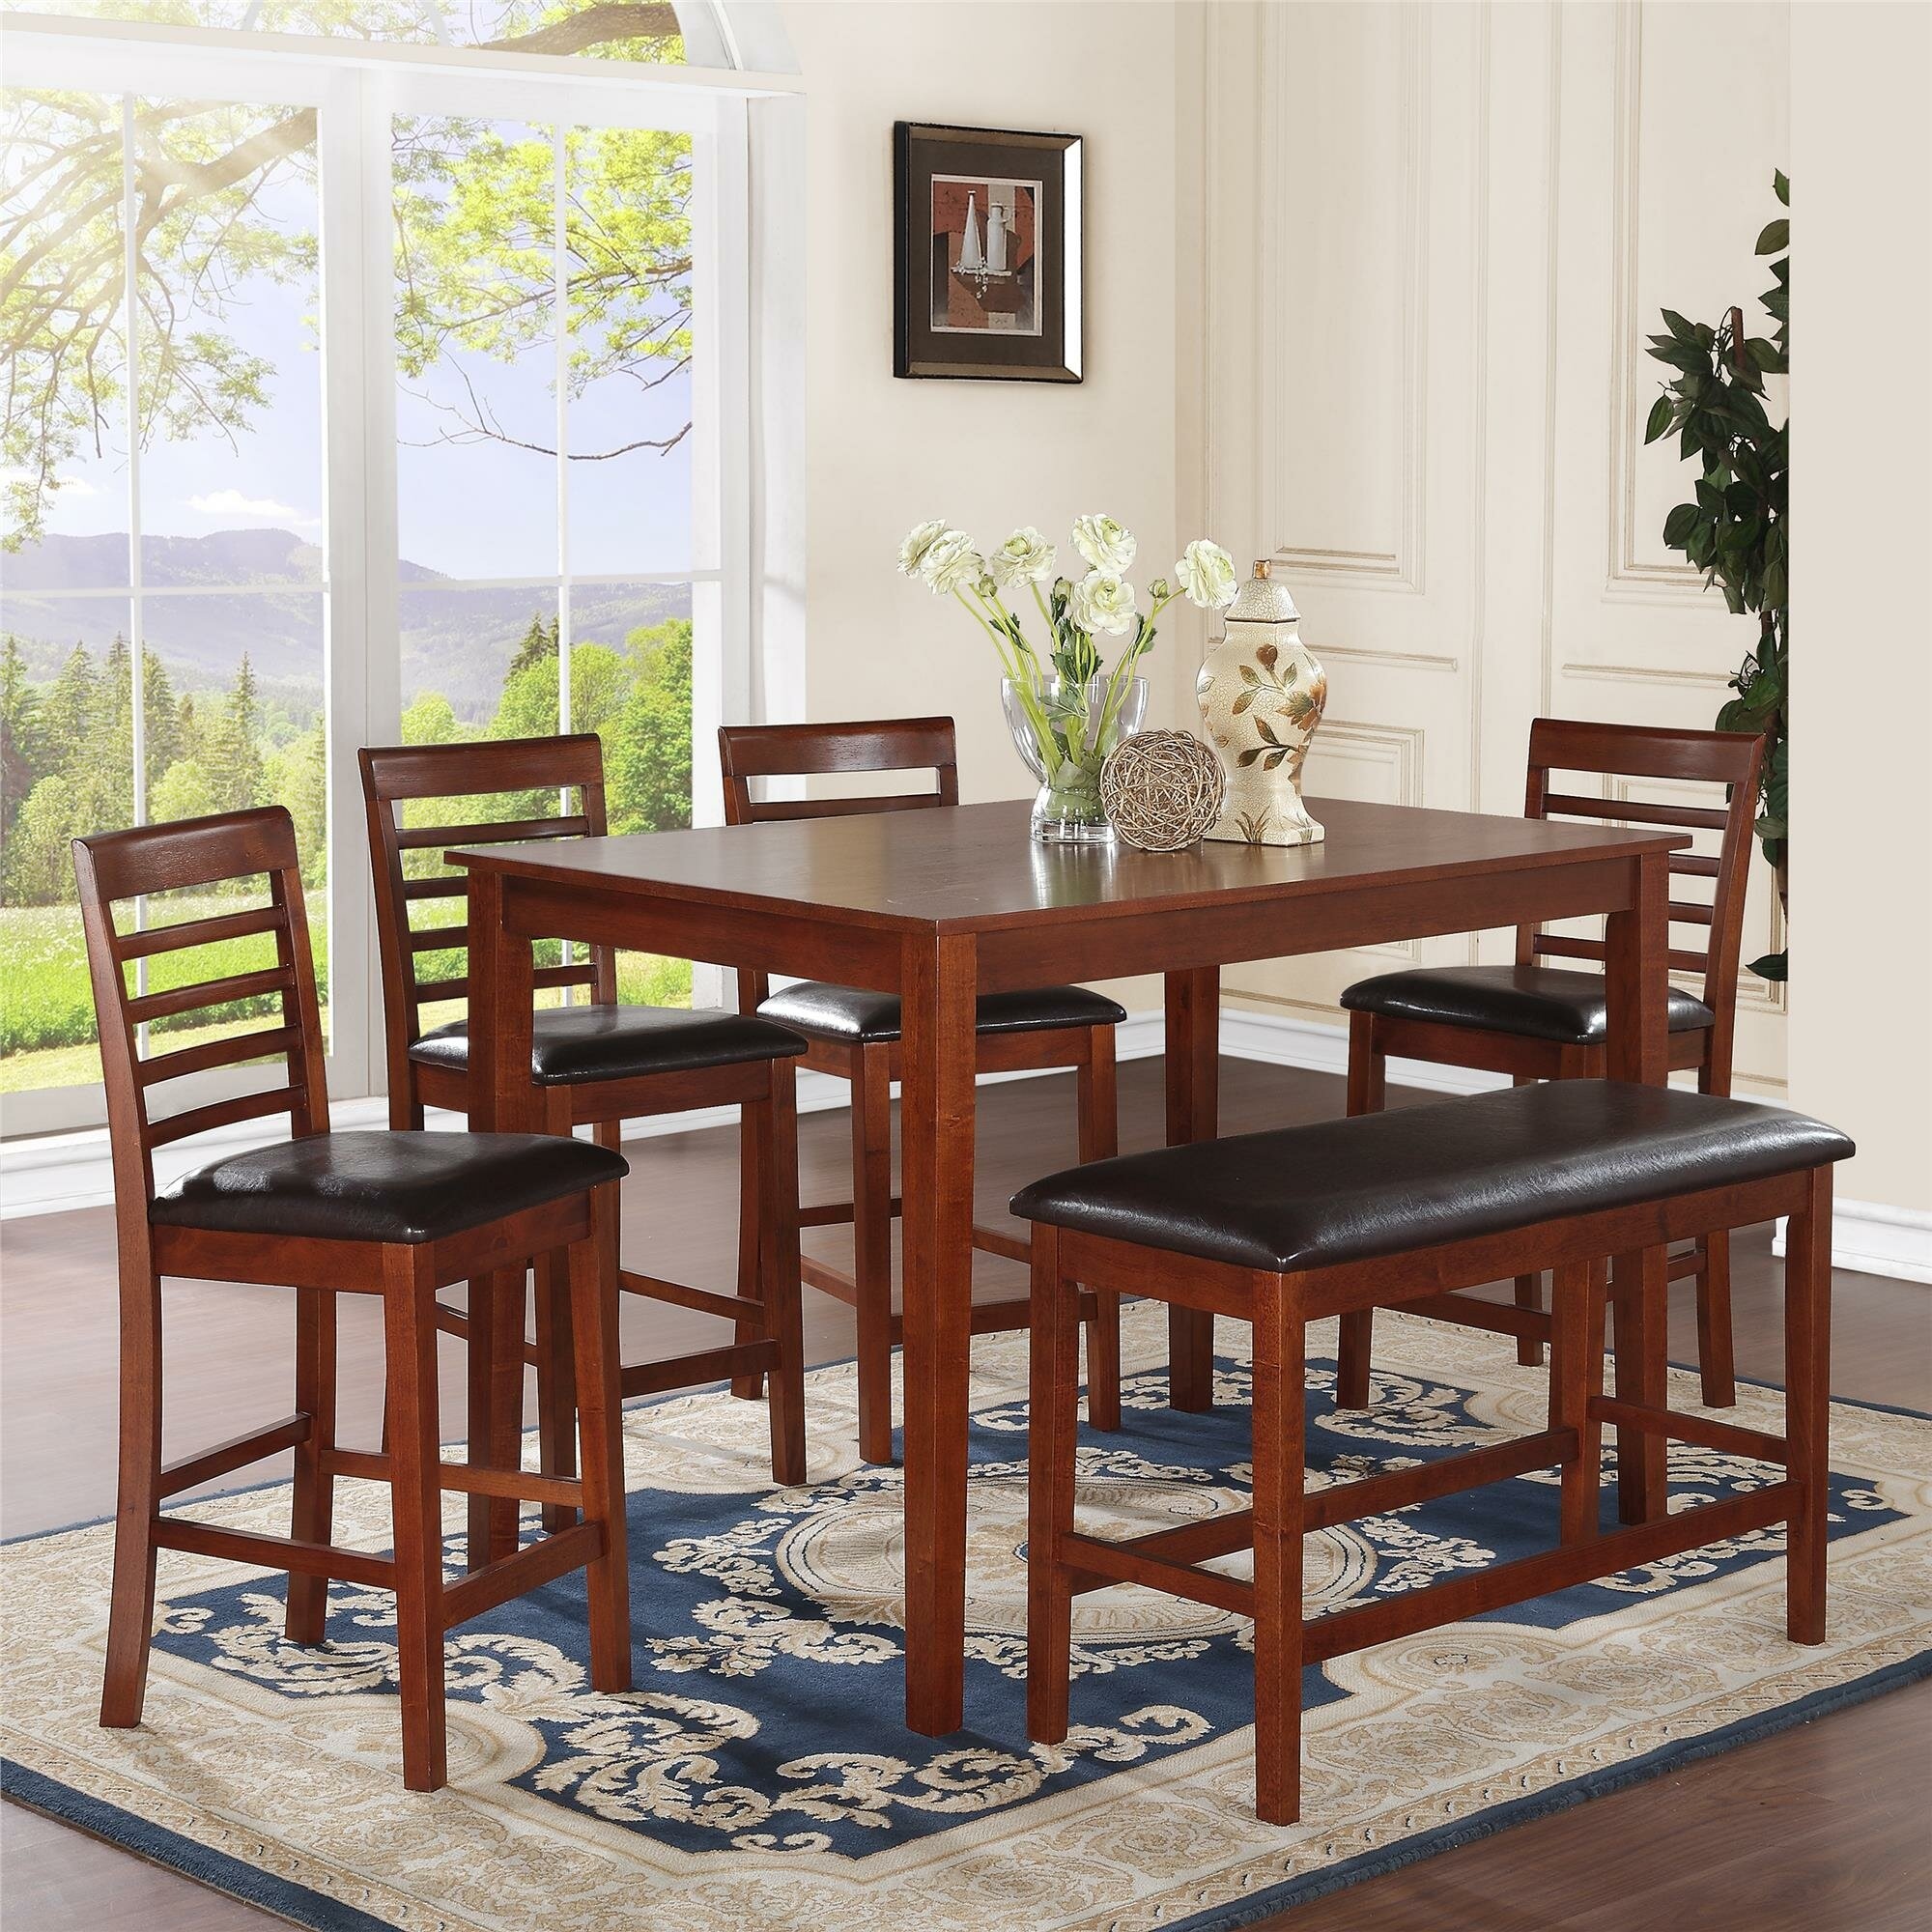 Maccauley 6 Piece Counter Height Dining Set Wayfair